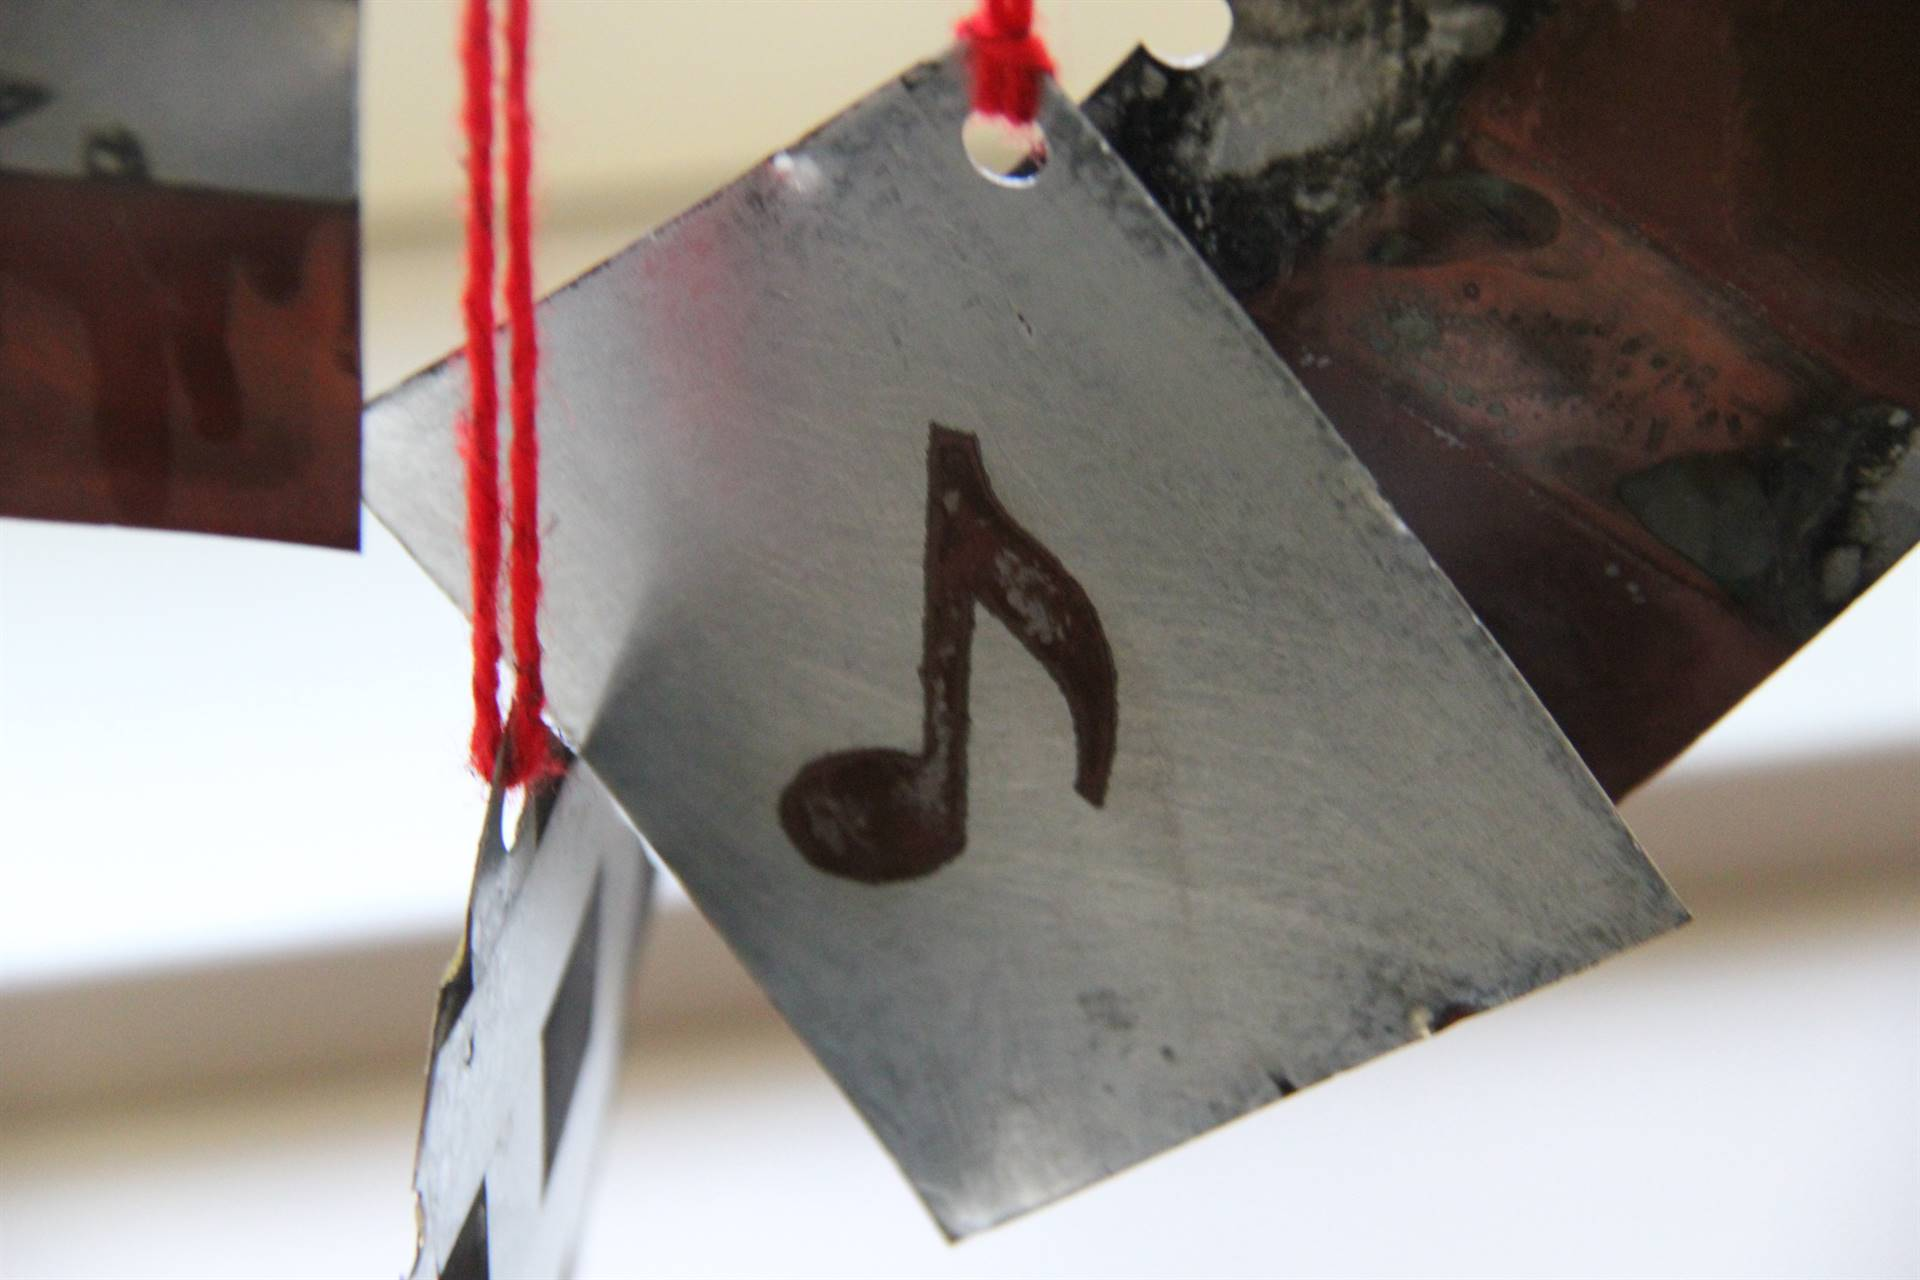 close up of ornament with musical note on it